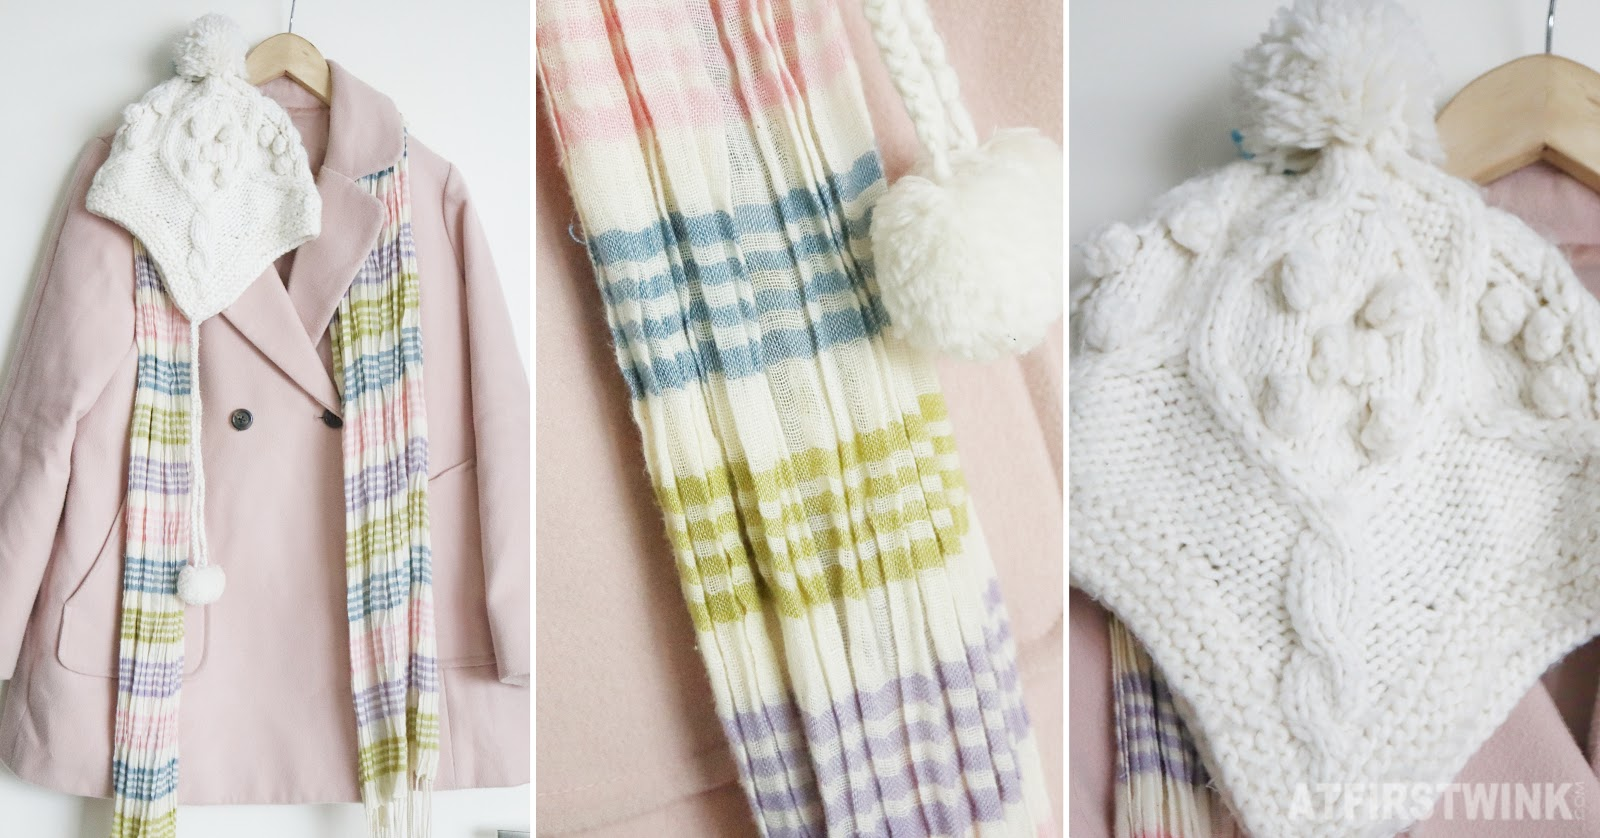 Earth music ecology pink coat accessorize white knit hat river island pastel stripe scarf